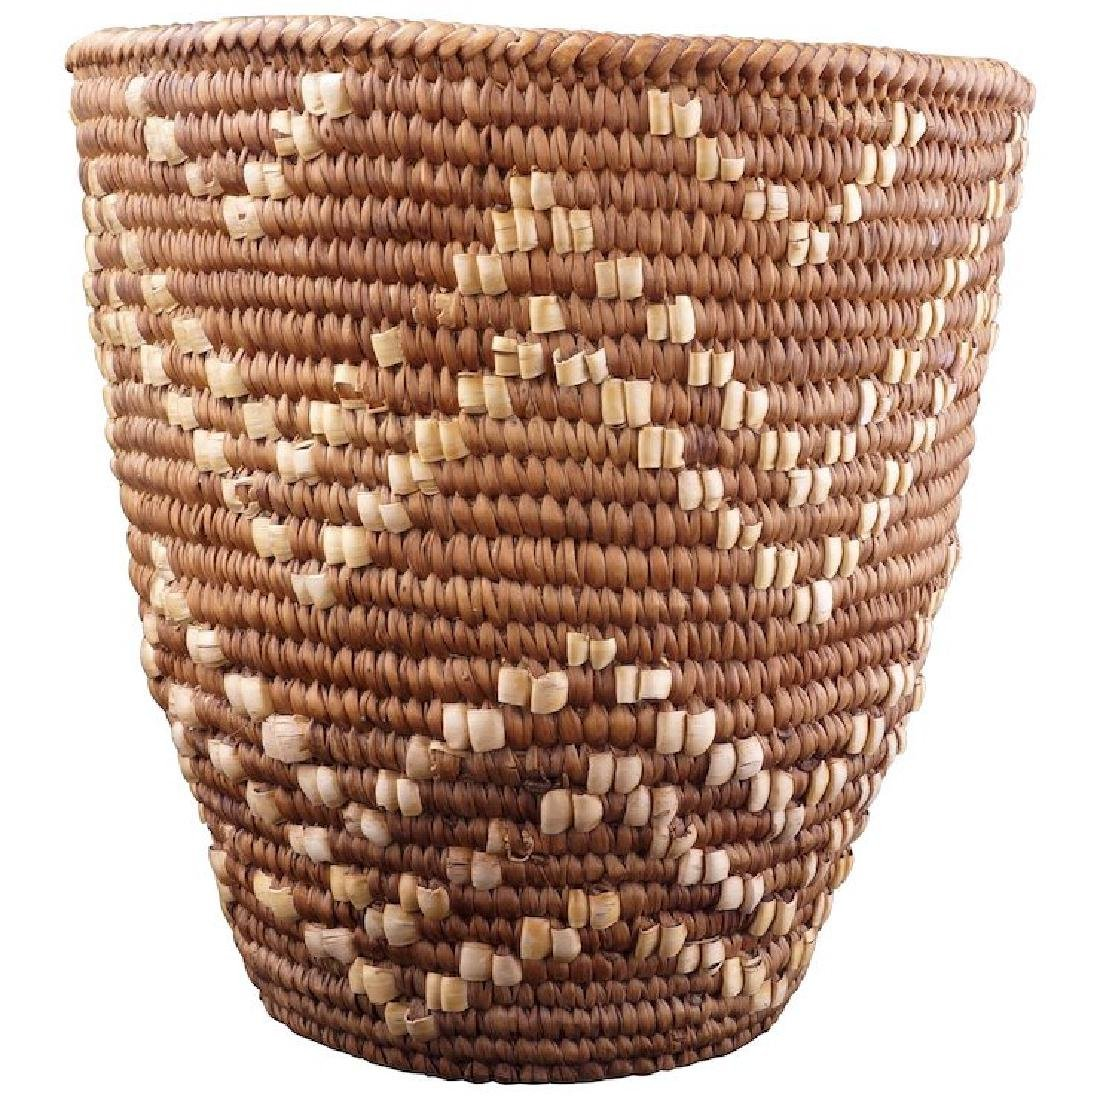 Imbricated Indian Klickitat berry basket early 20th